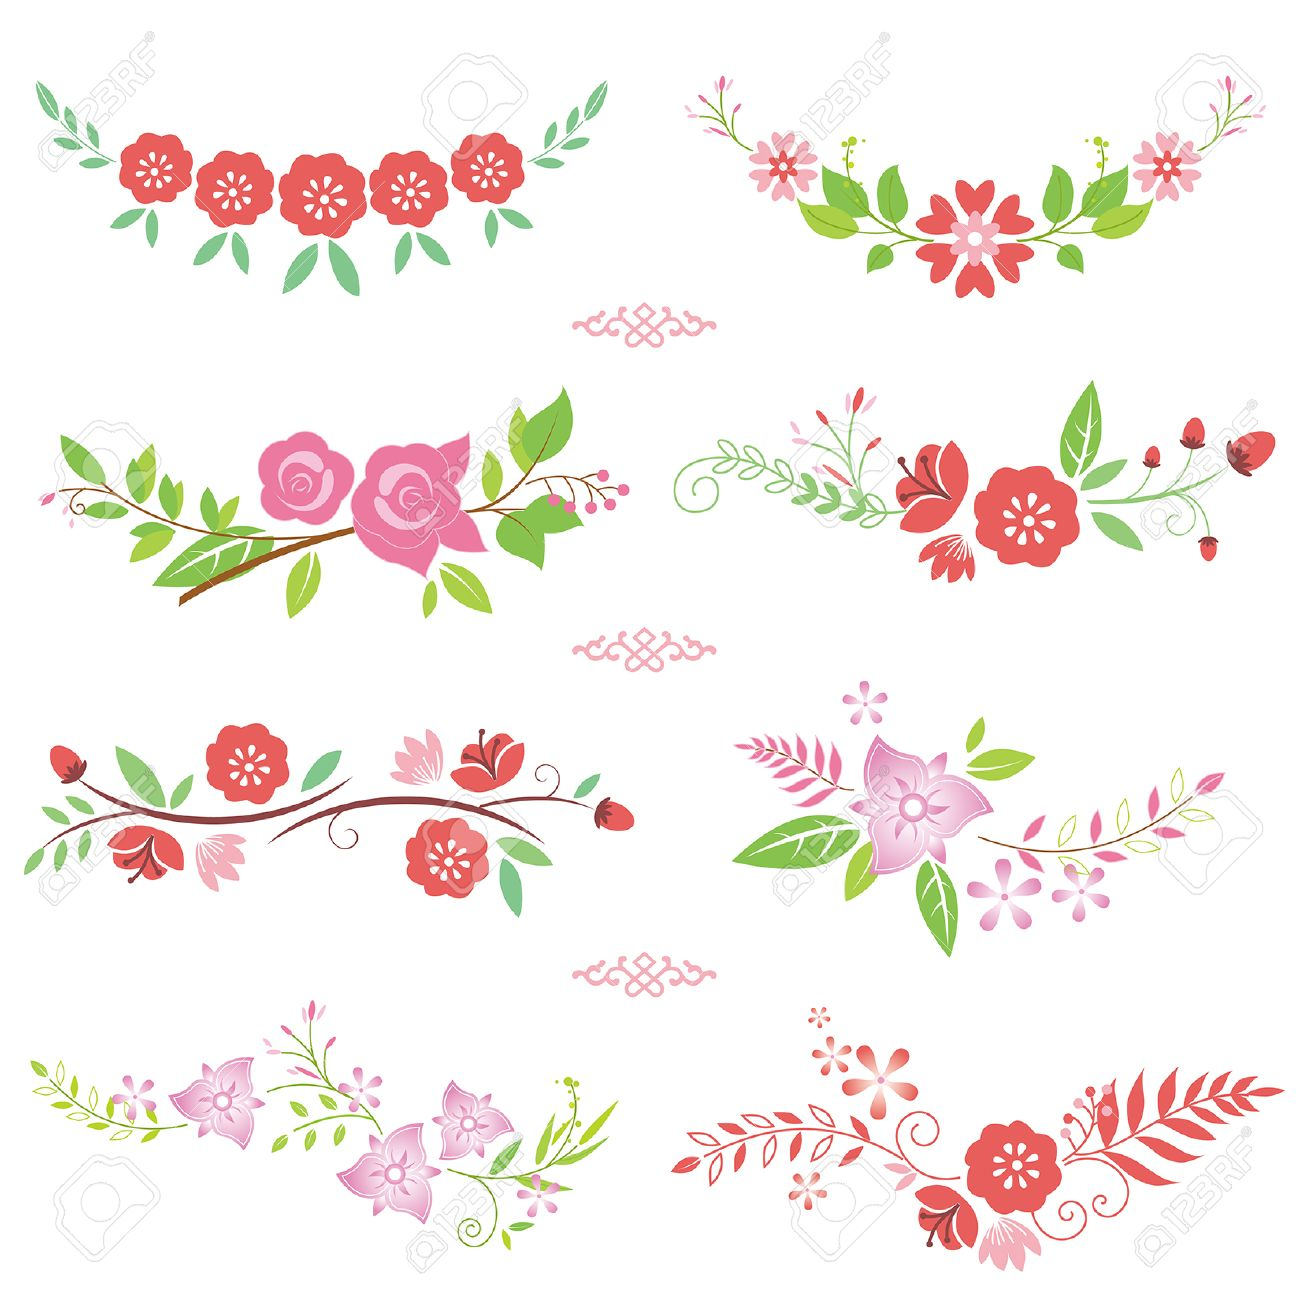 Pink flower border royalty free cliparts vectors and stock pink flower border mightylinksfo Images